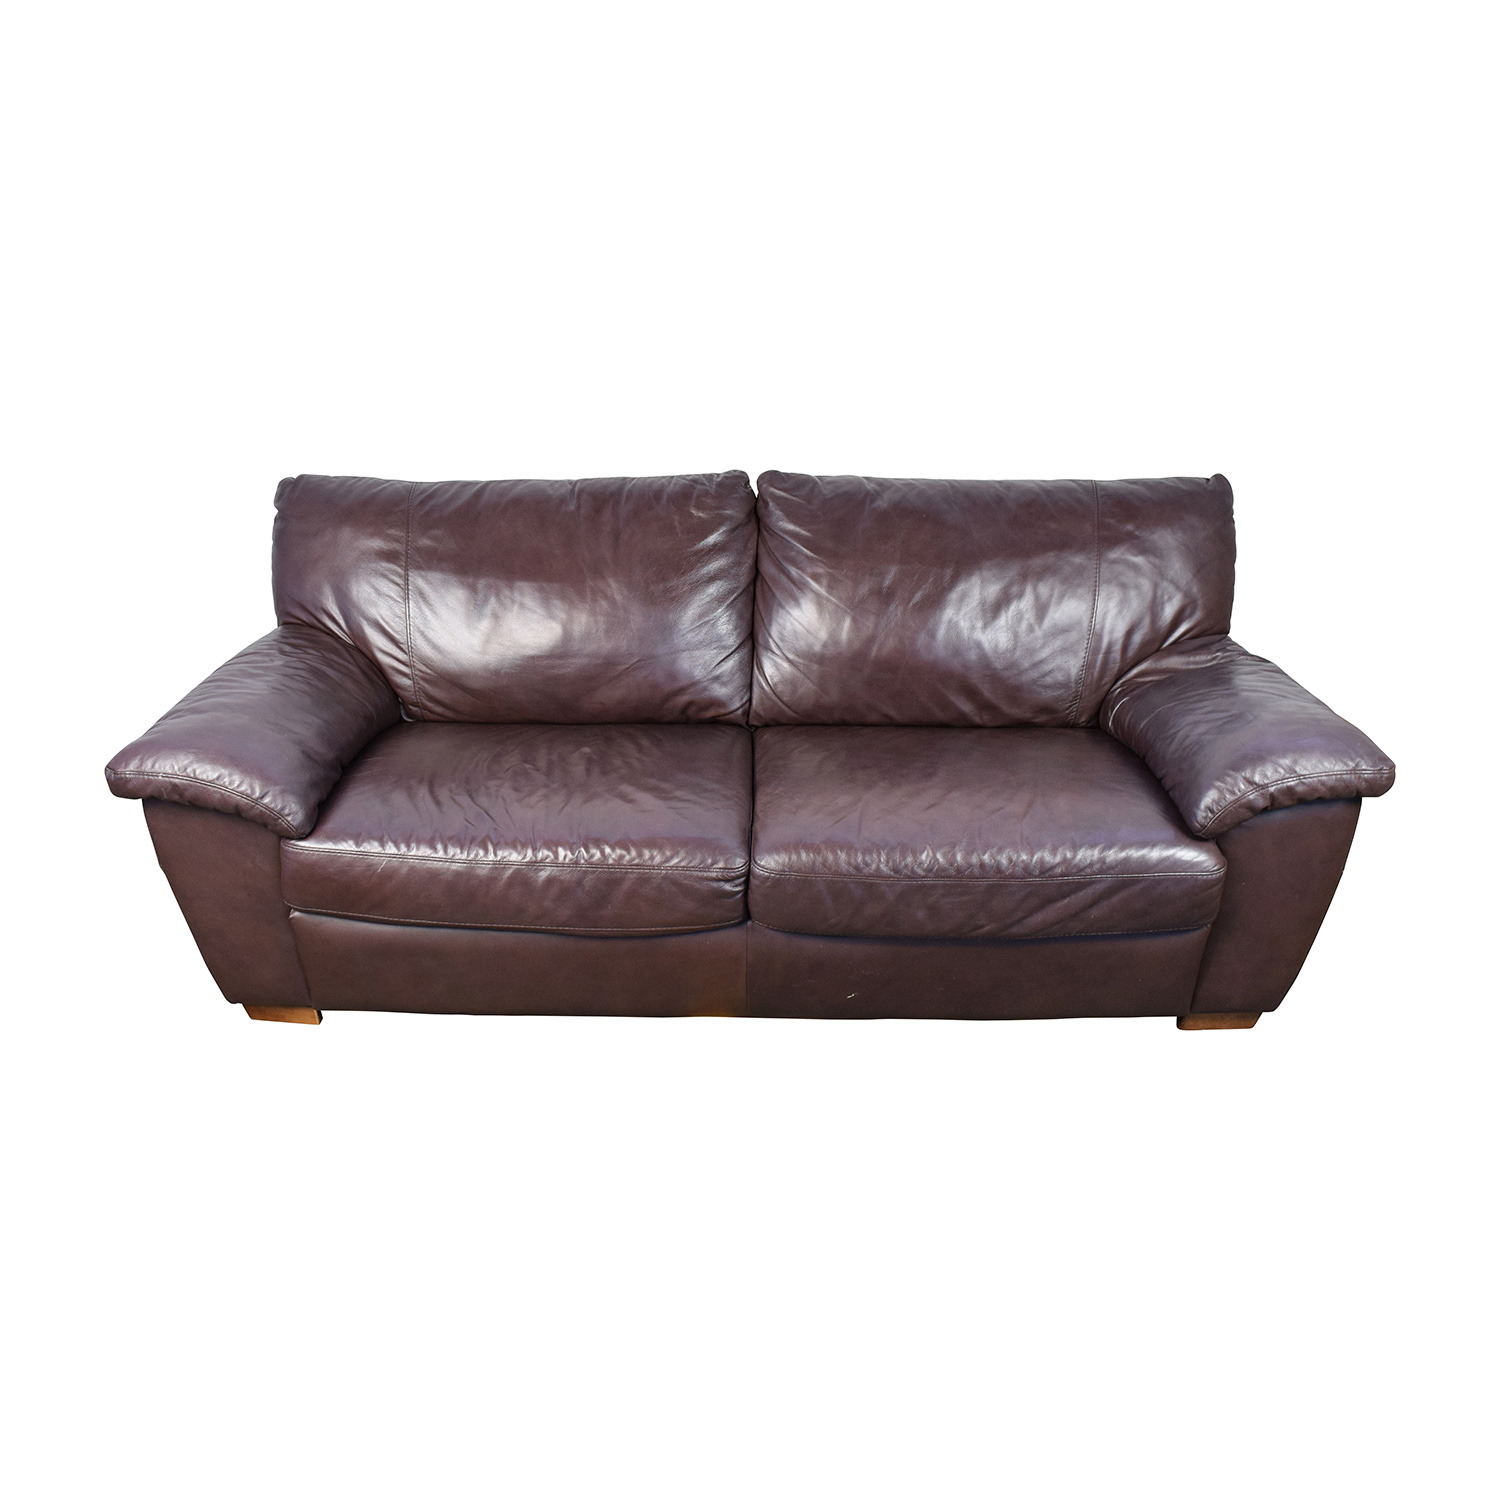 Espresso Leather Couch used